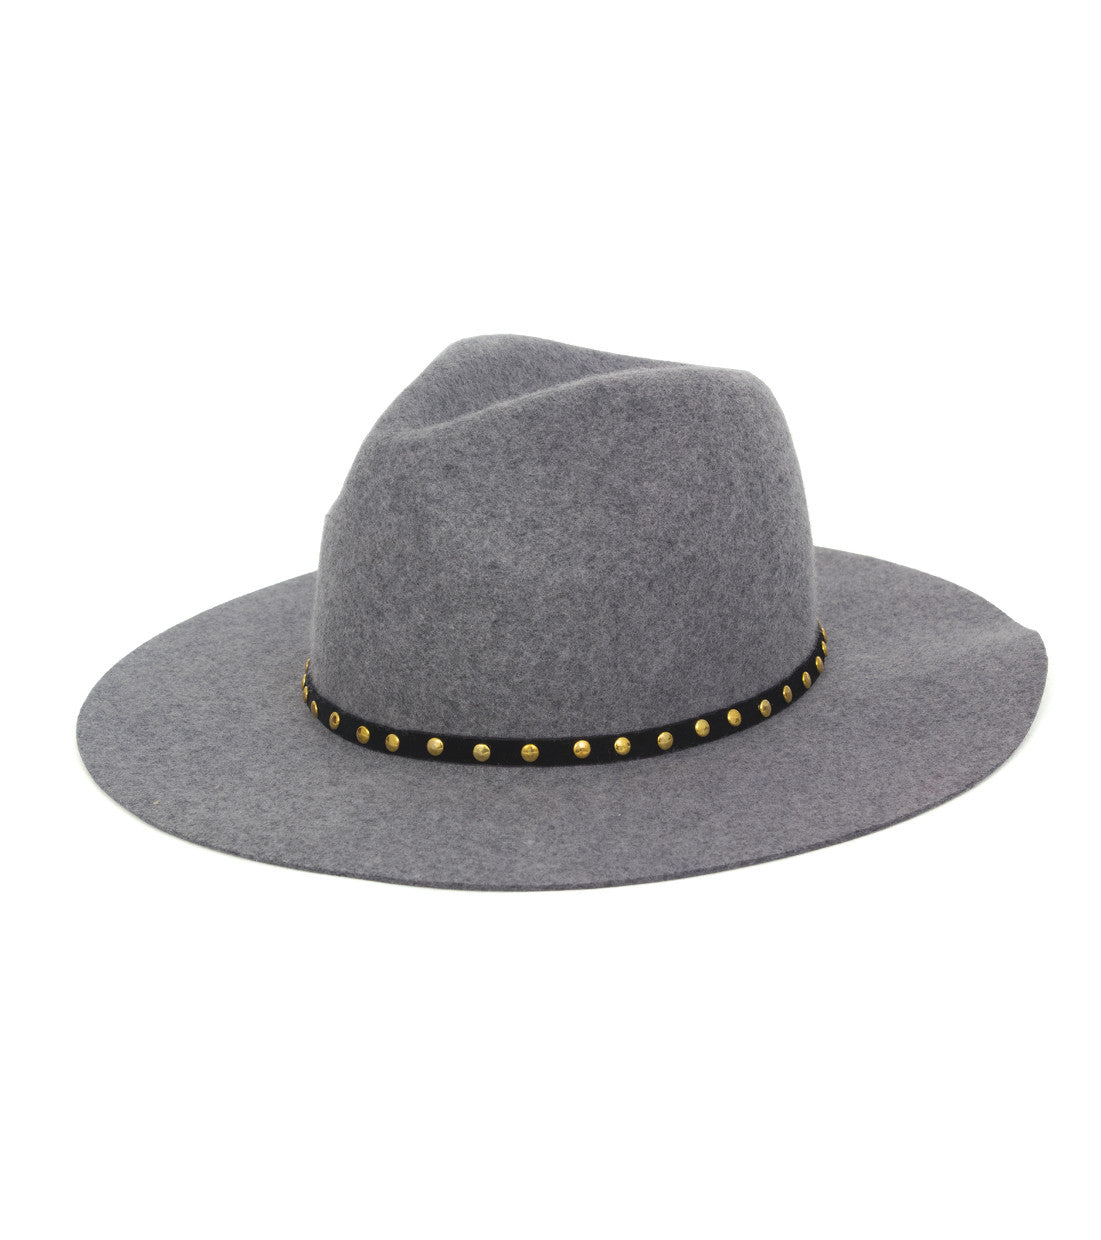 Gold Studded Felt Panama Hat - Just Jamie